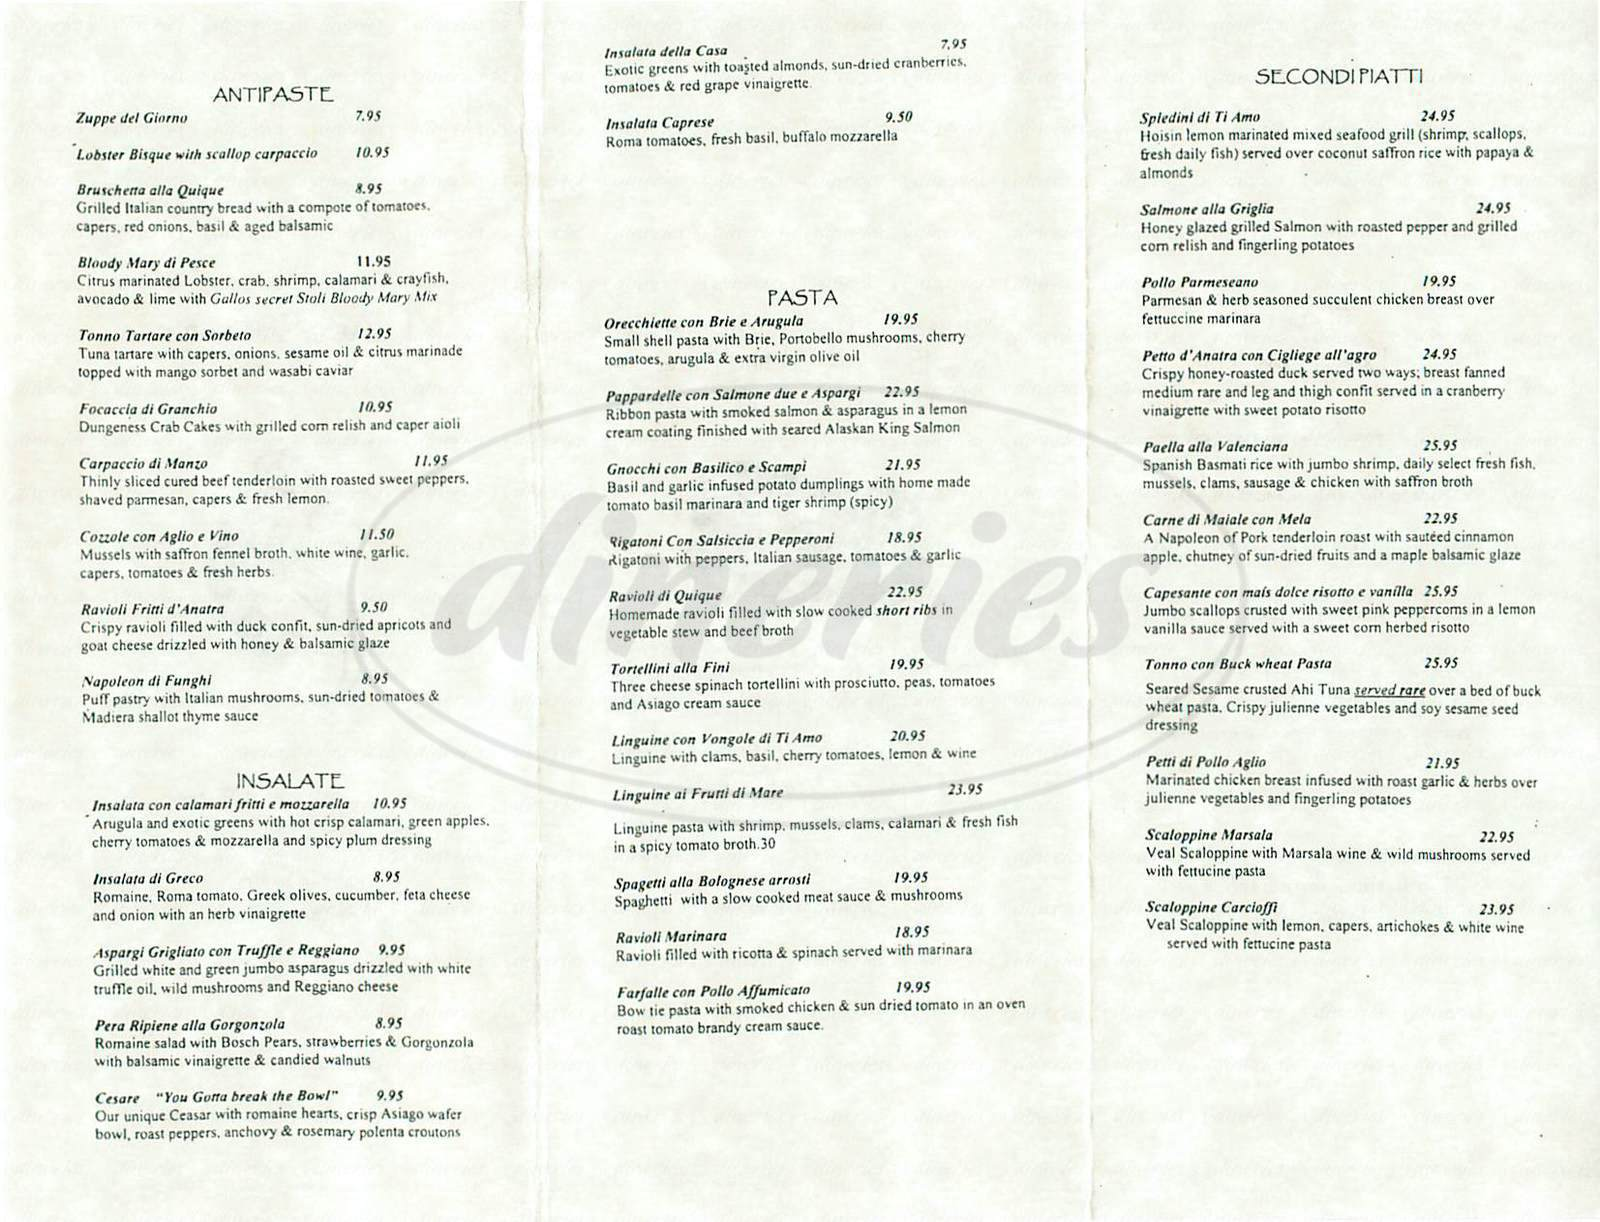 menu for Ti Amo Ristorante